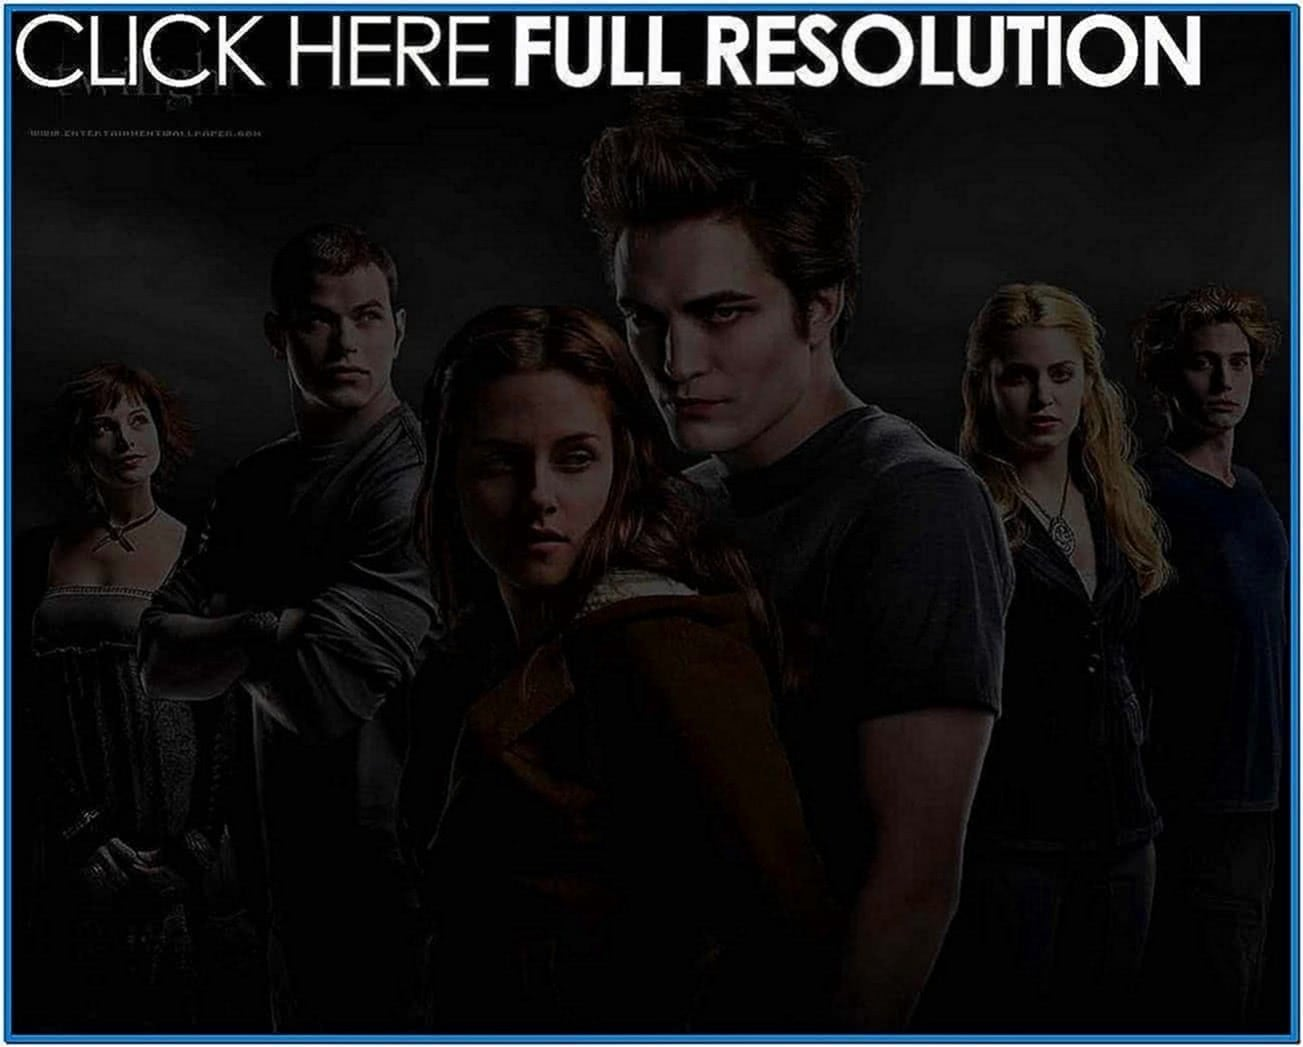 Twilight Screensavers and Backgrounds